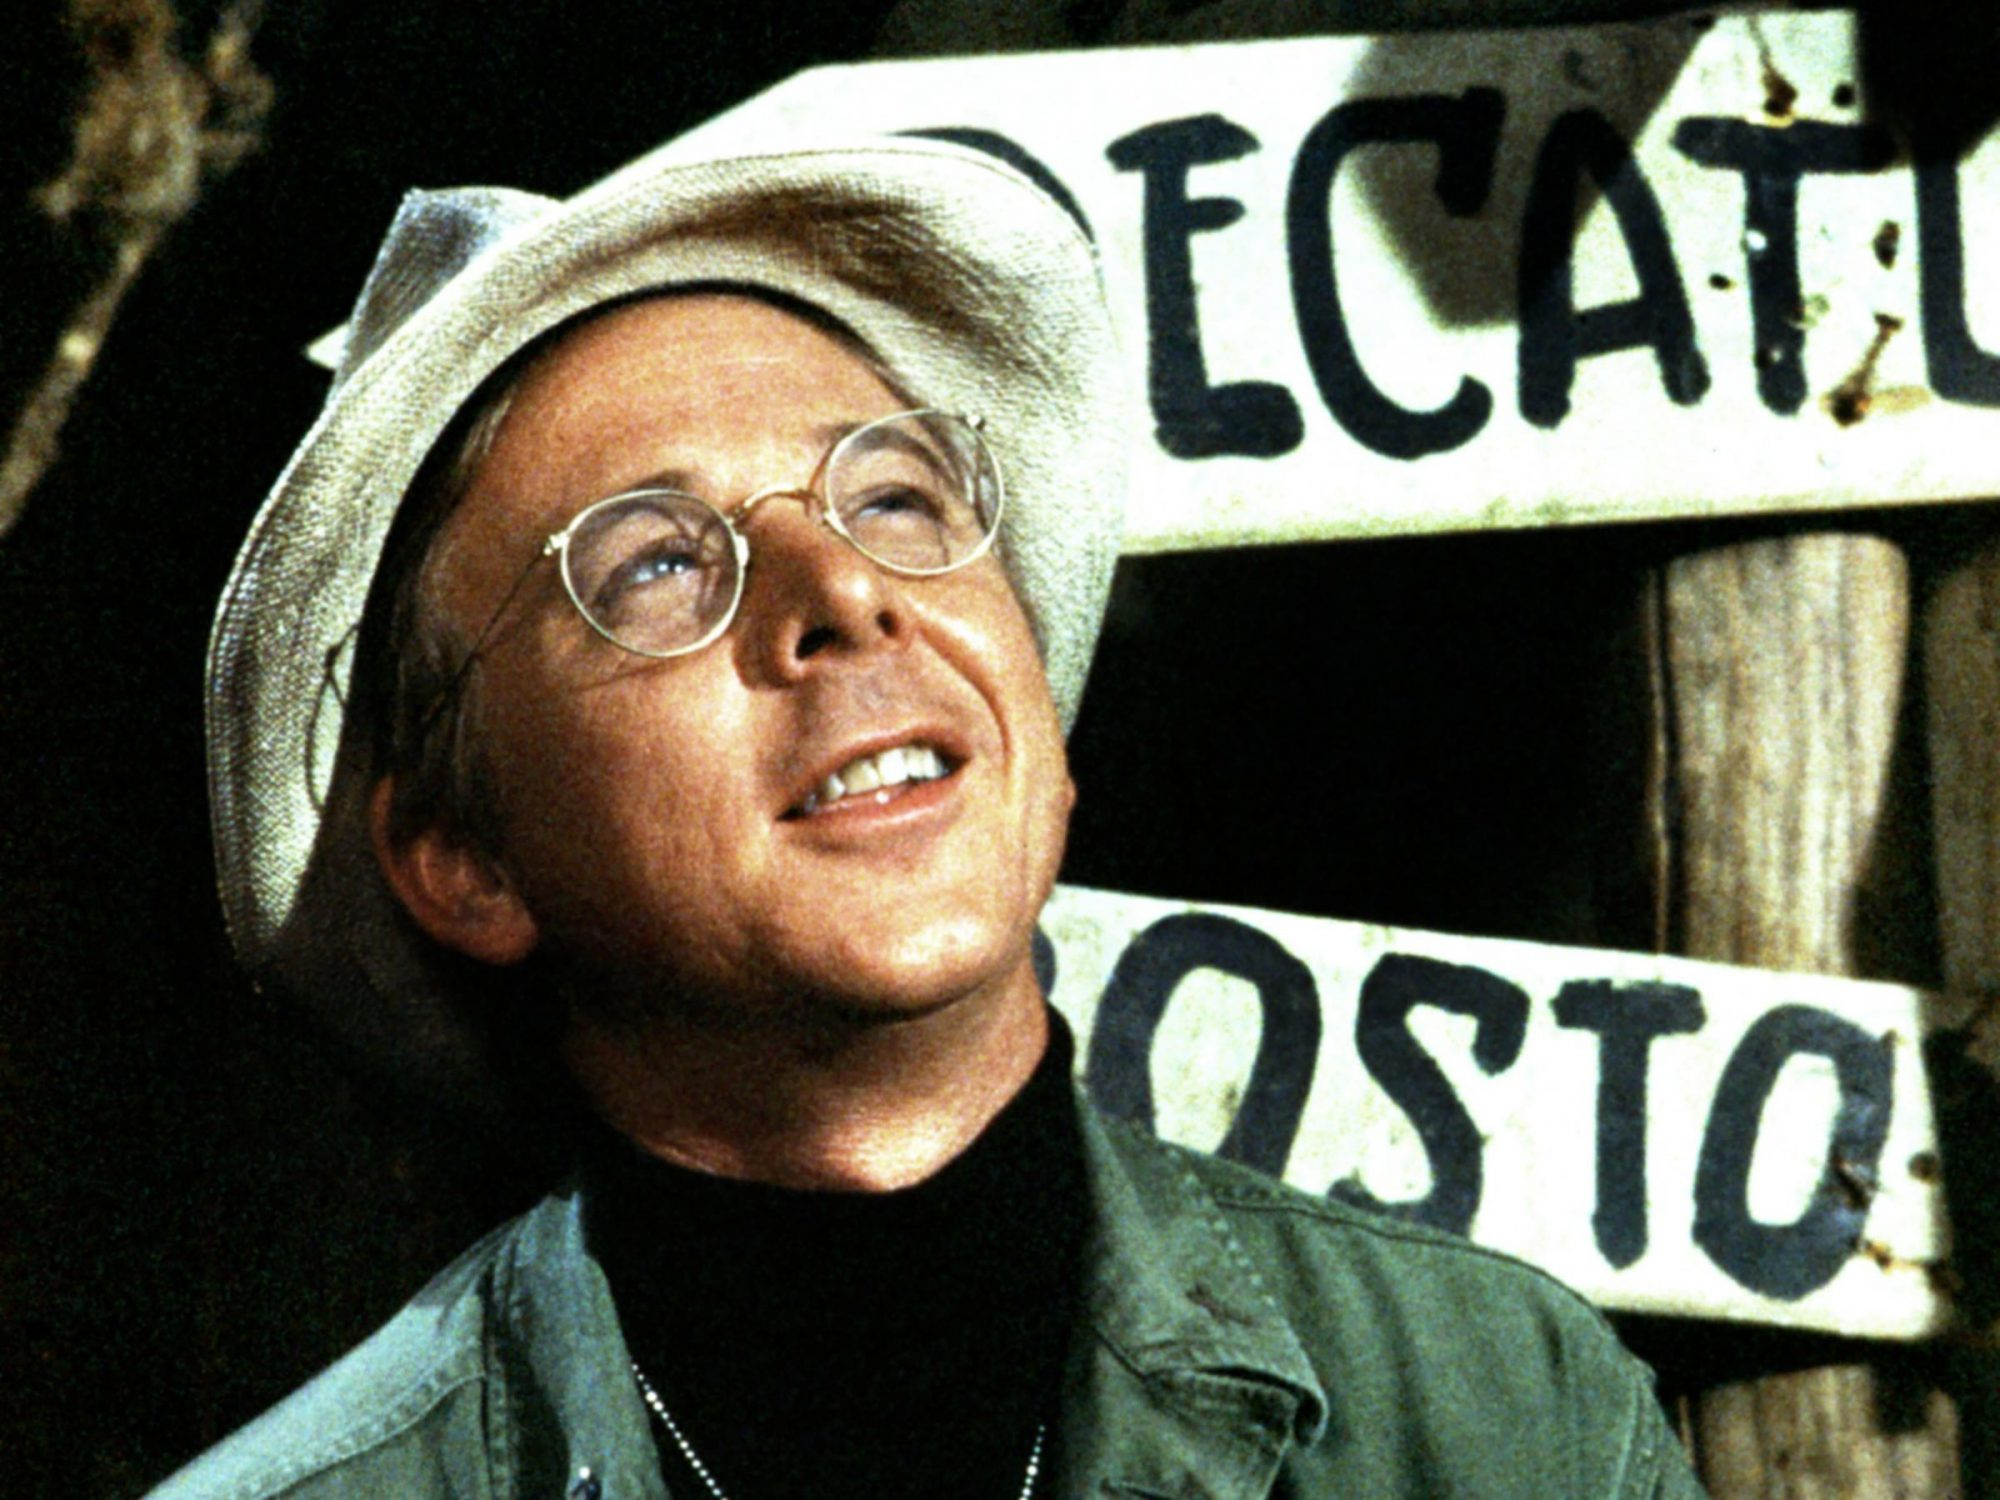 MASH, William Christopher, 1972-83, TM and Copyright © 20th Century Fox Film Corp. All rights reserv